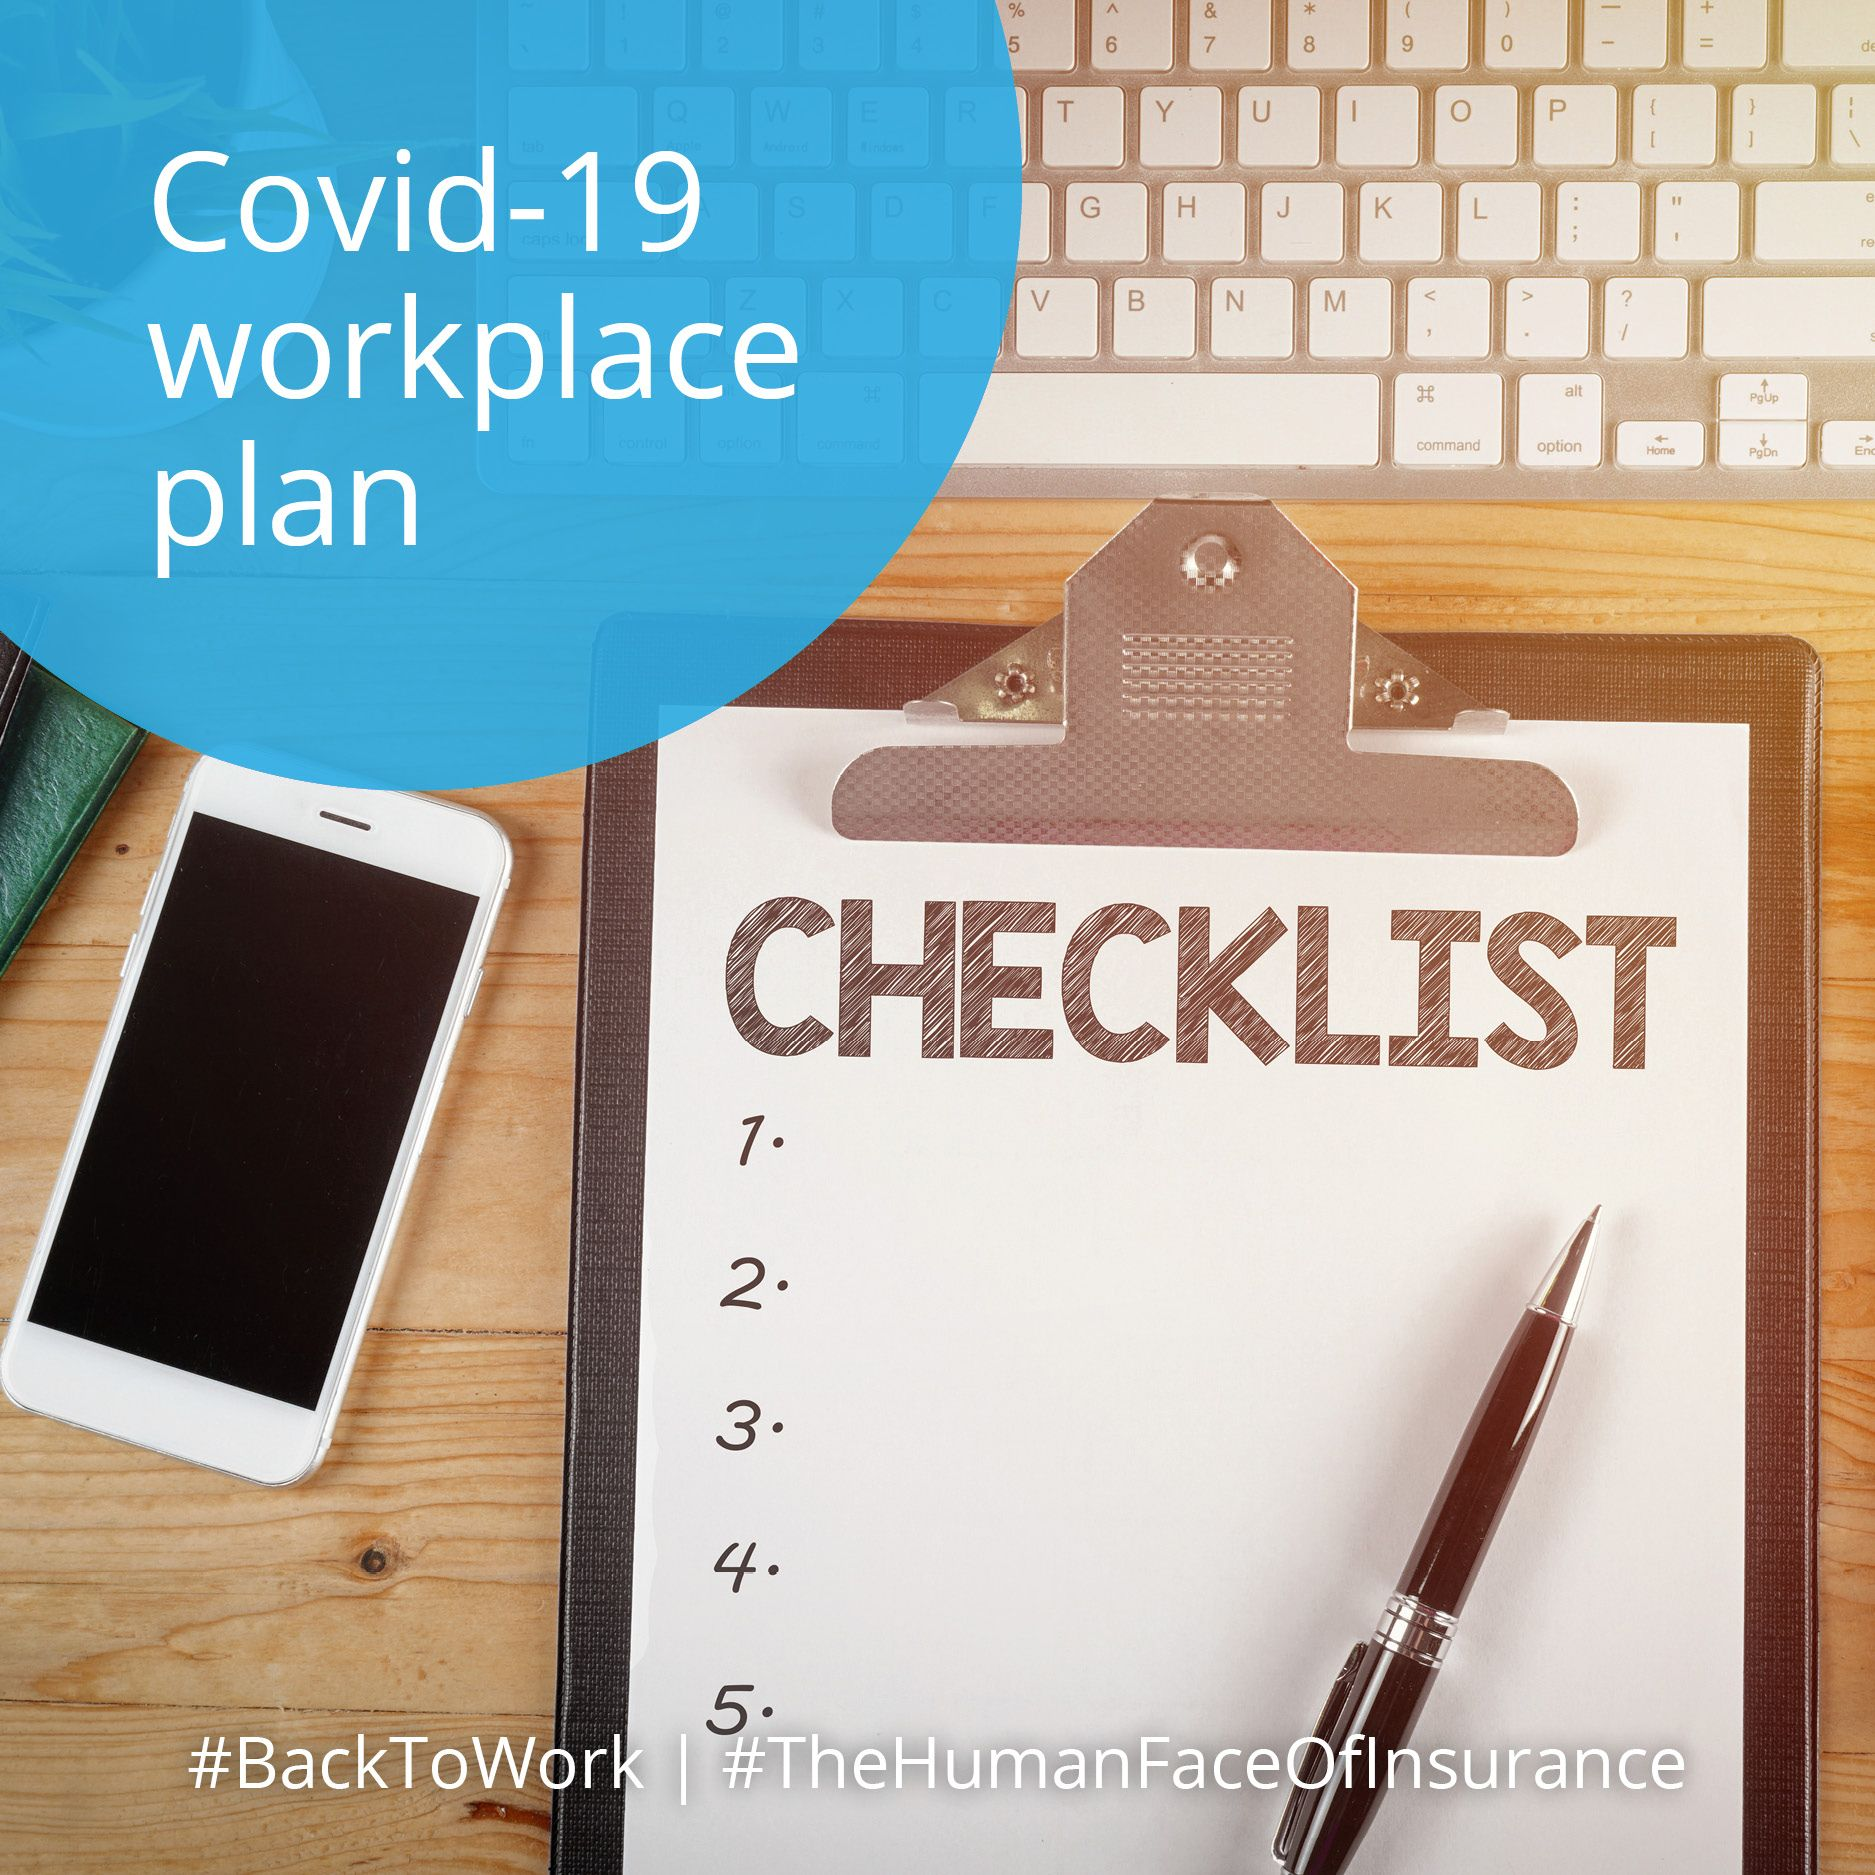 SPECIAL CONSIDERATION FOR EMPLOYEES WITH KNOWN OR